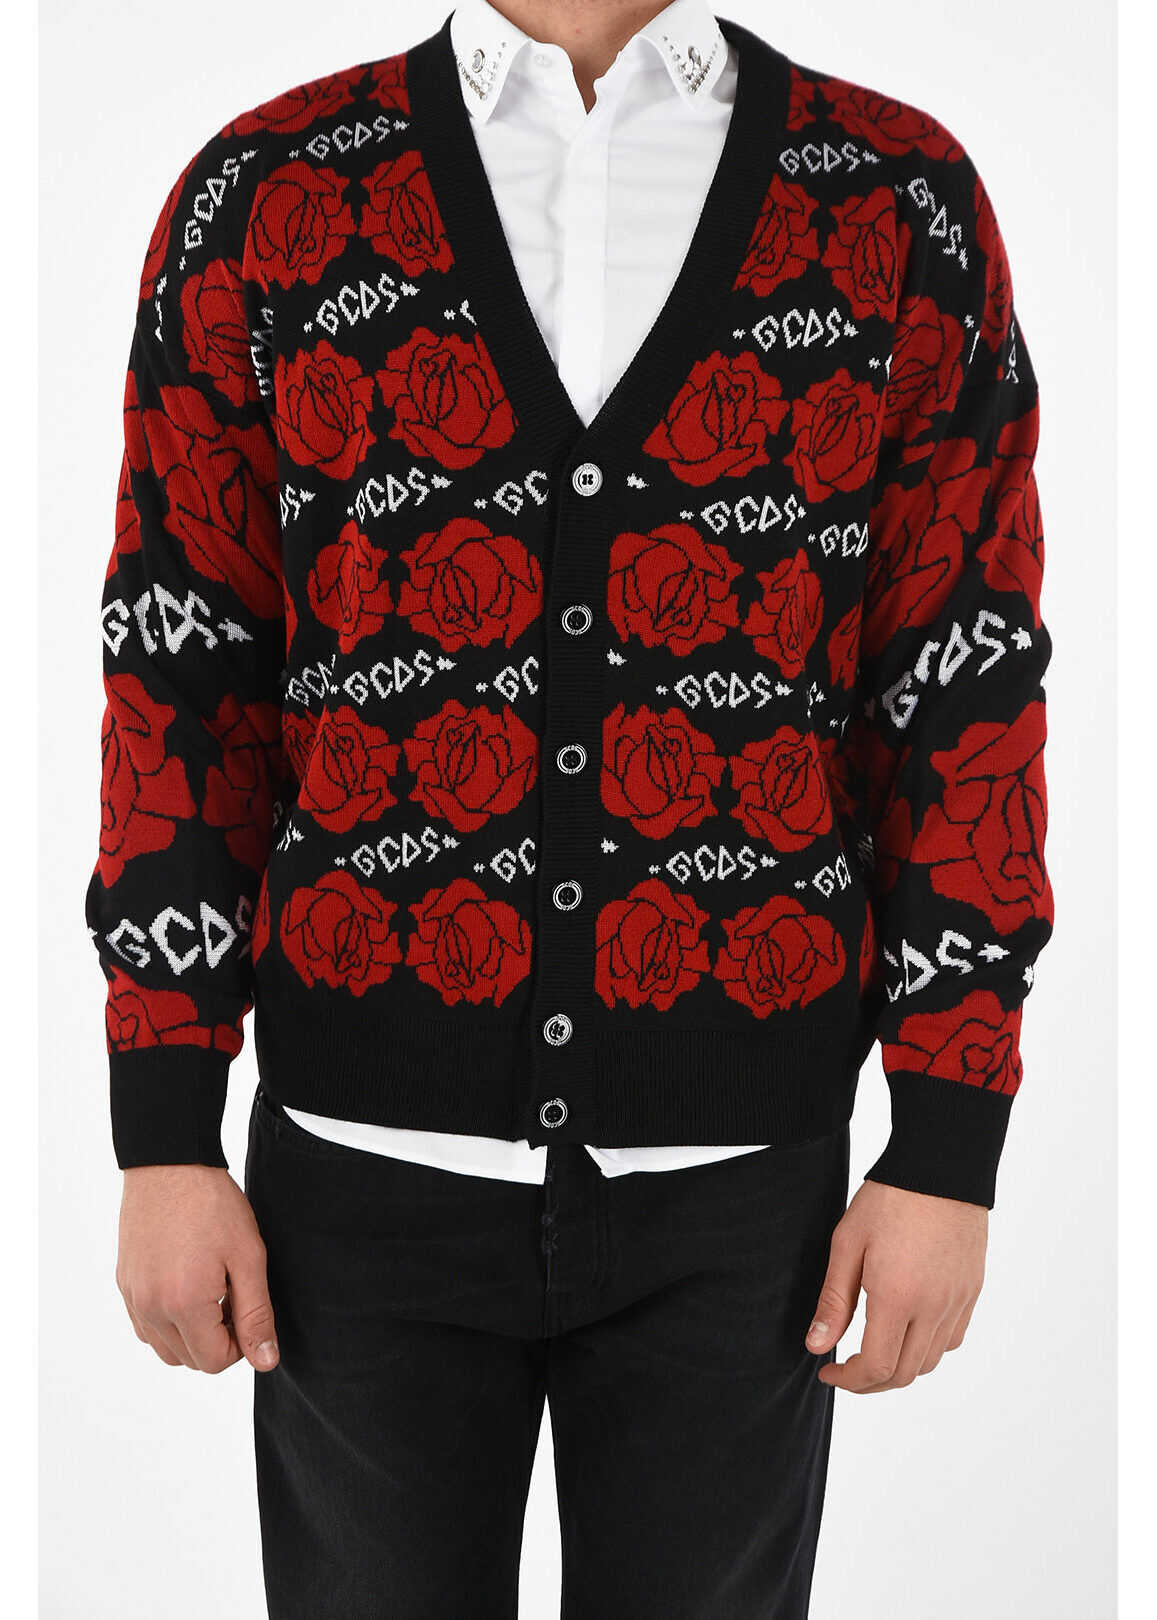 GCDS Embroidered Cardigan RED imagine